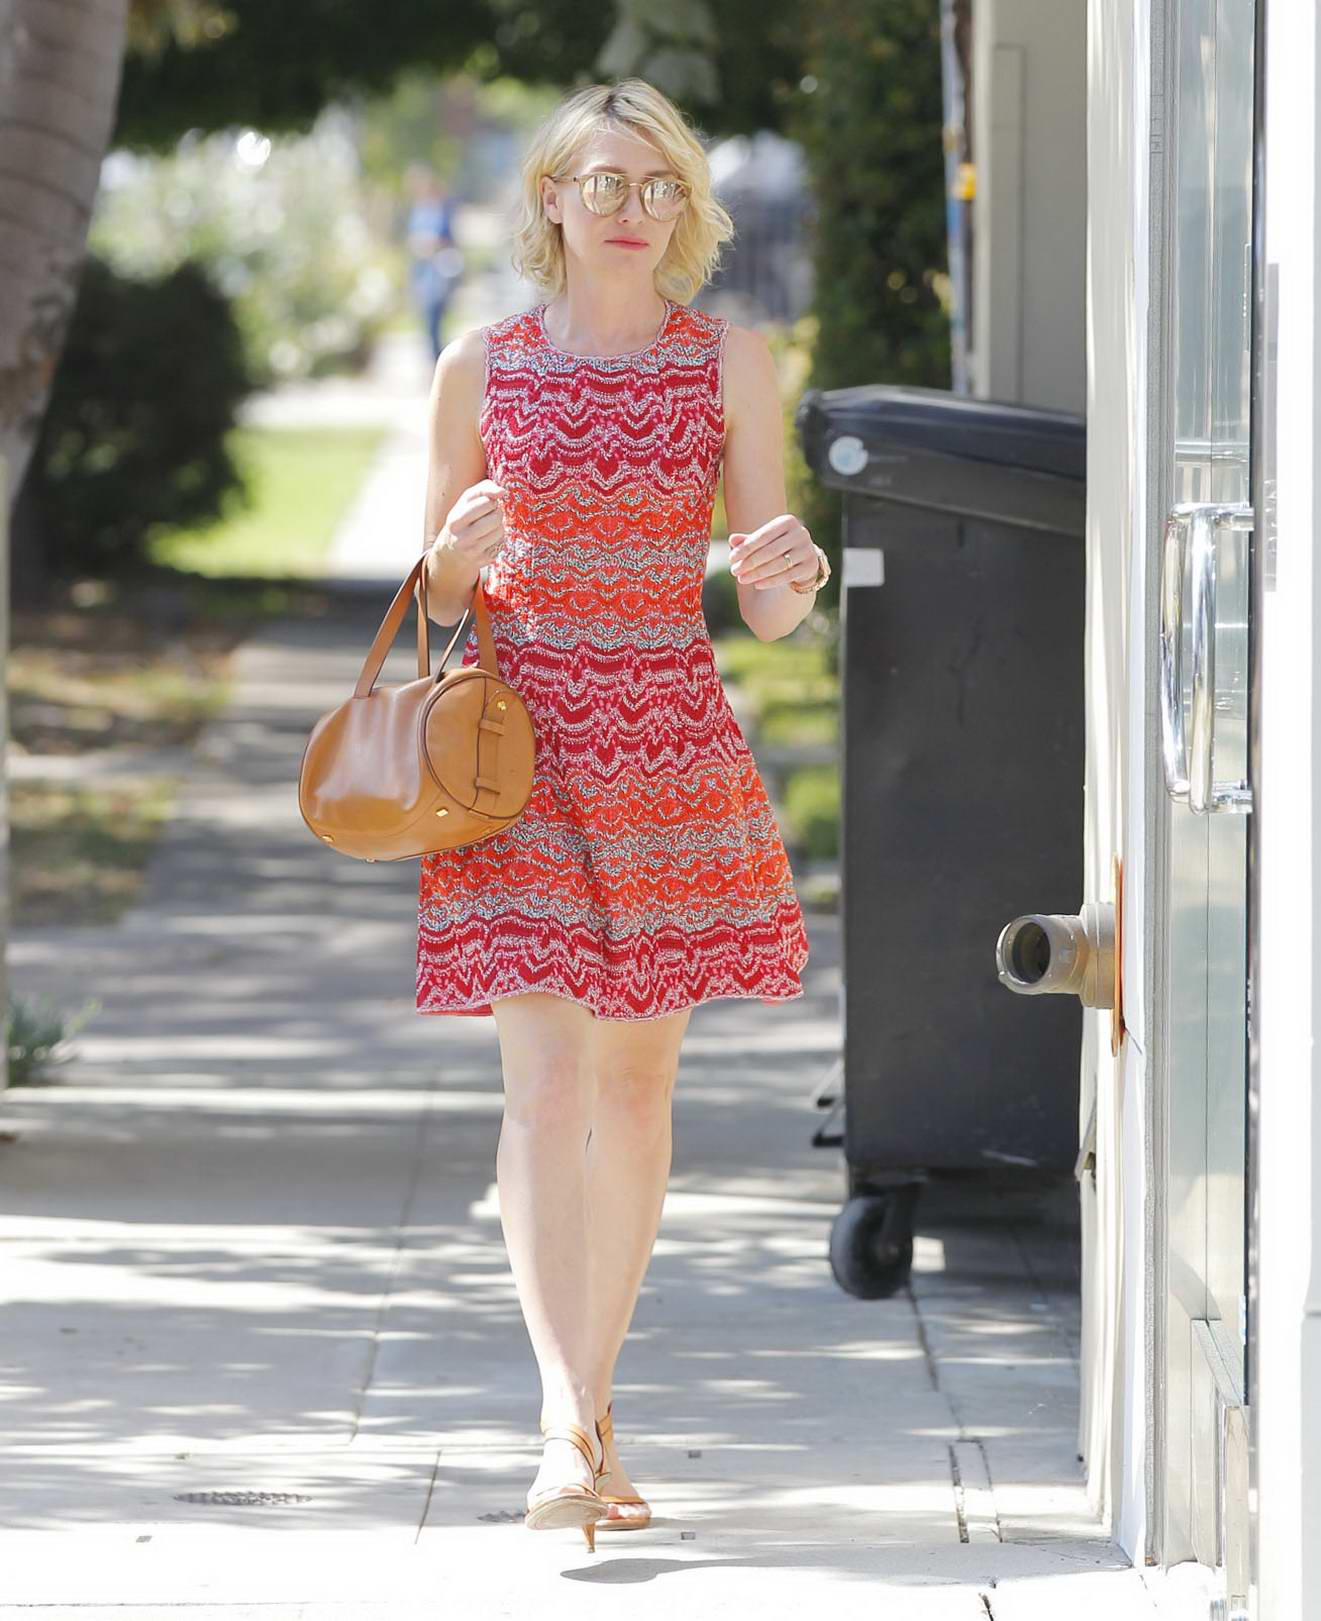 Portia de Rossi in a short red dress running errands in West Hollywood, Los Angeles